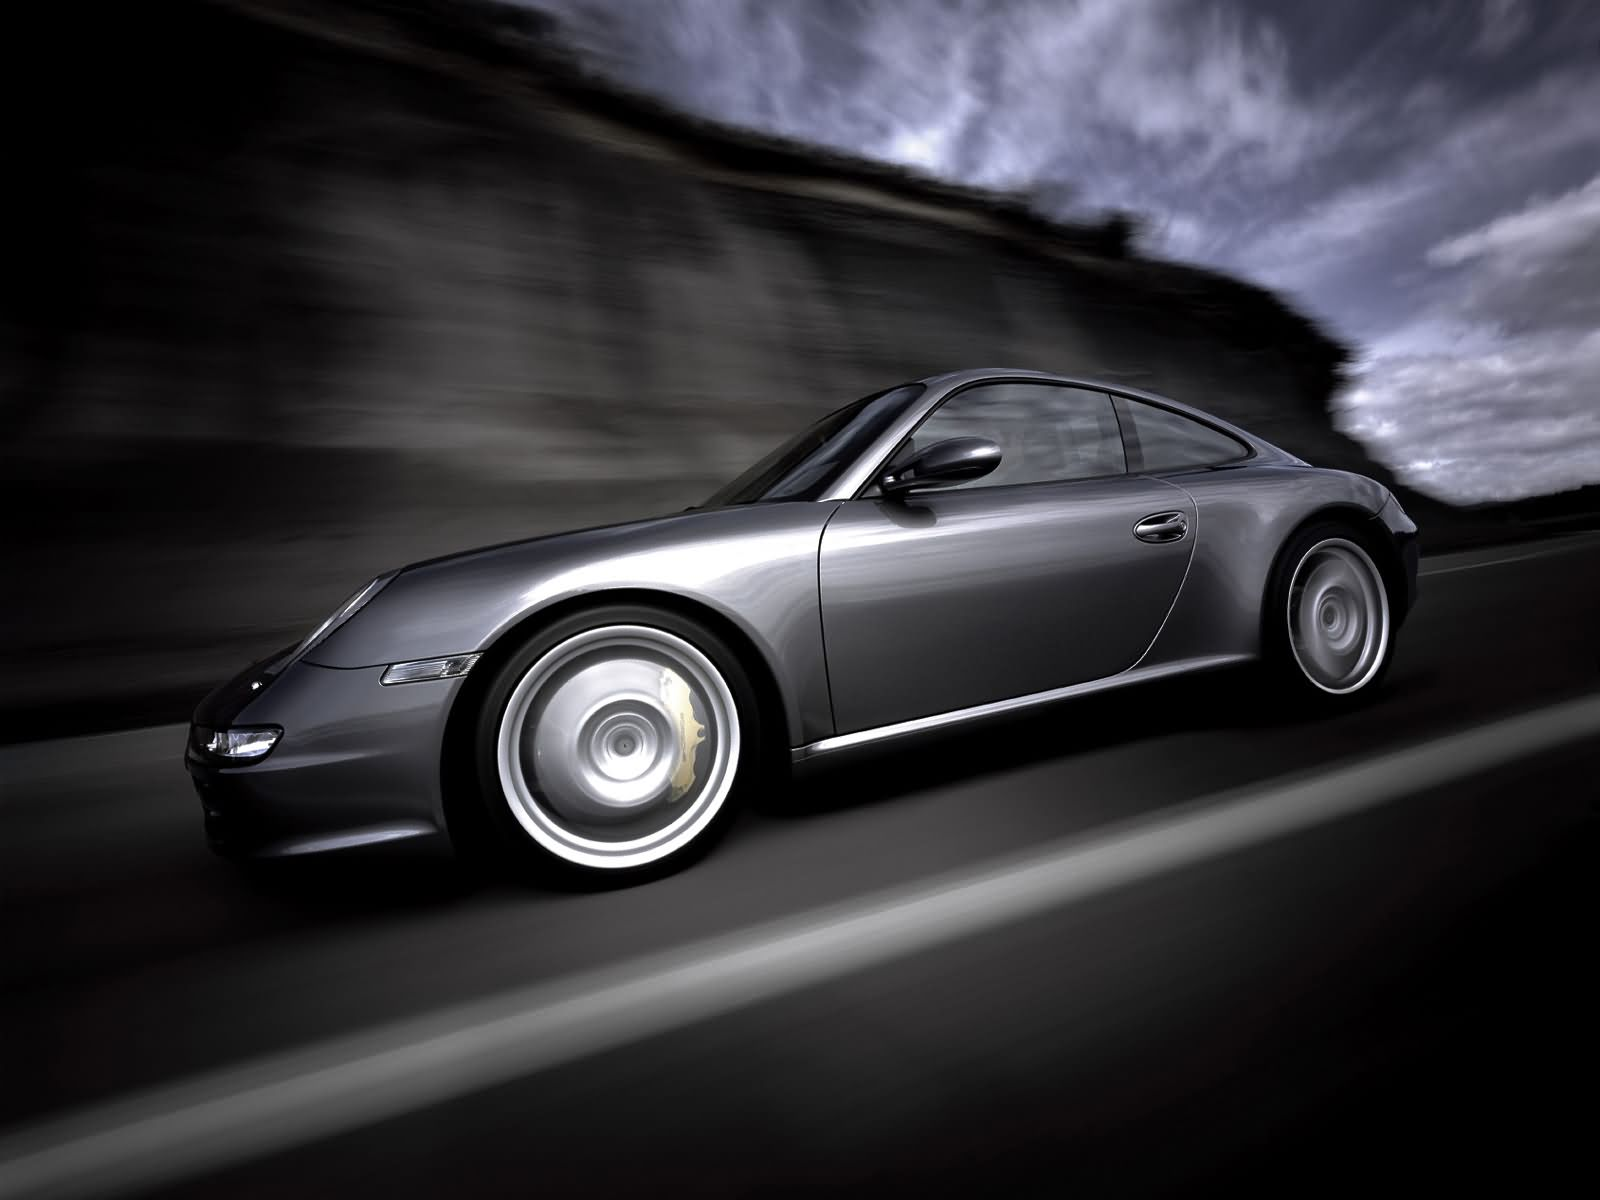 Porsche 997 911 Carrera S photo 18205